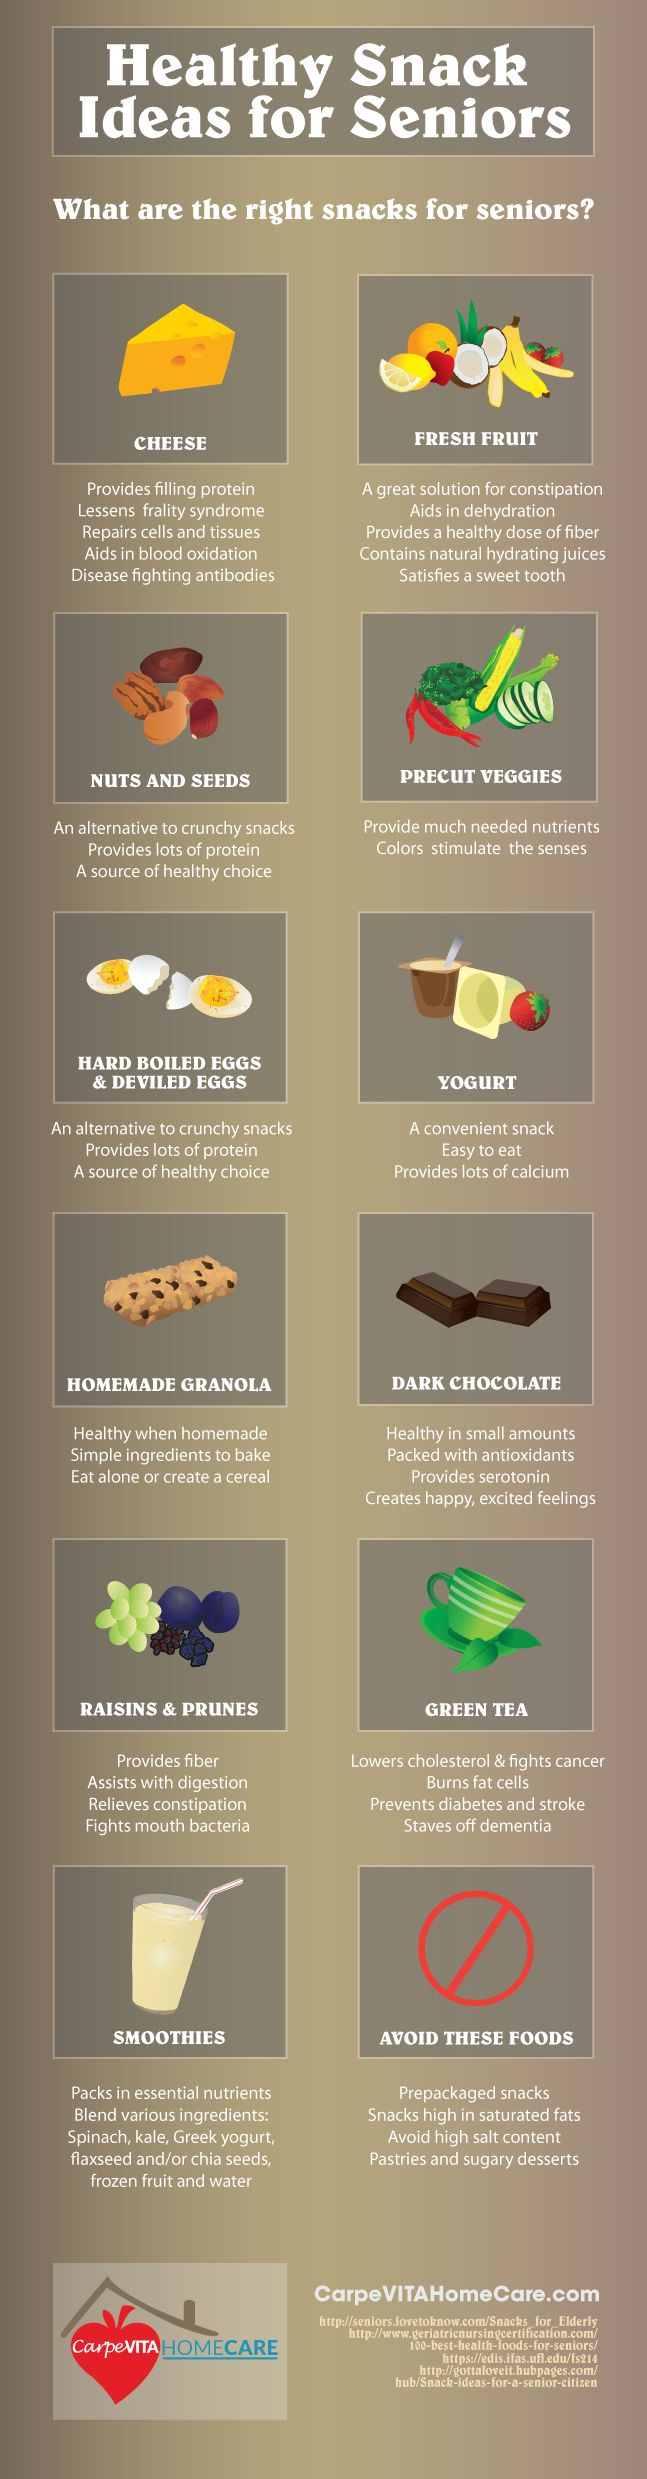 Healthy Snack Ideas for Seniors Infographic: http://carpevitahomecare.com/healthy-snack-ideas-for-seniors/